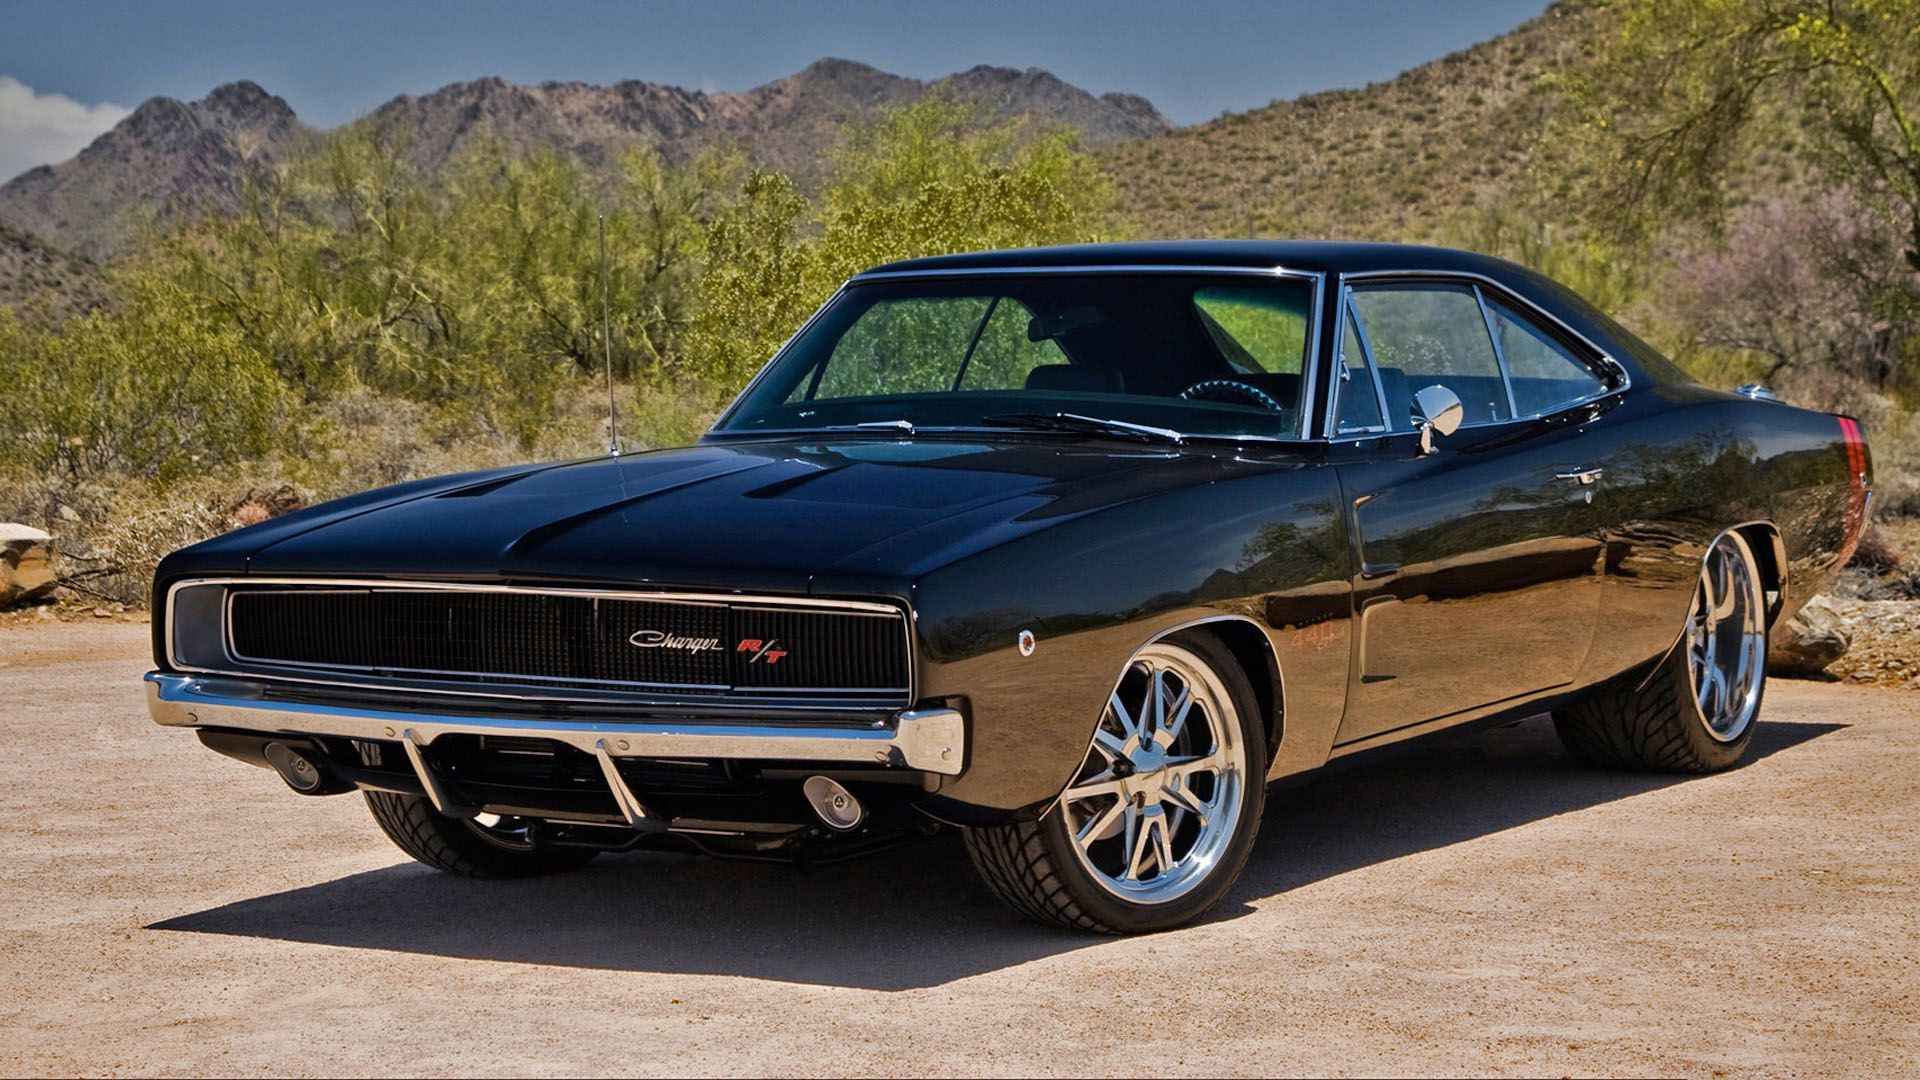 1969 dodge charger 💪🔥🔥🔥 #dodge #charger #classic #automobile